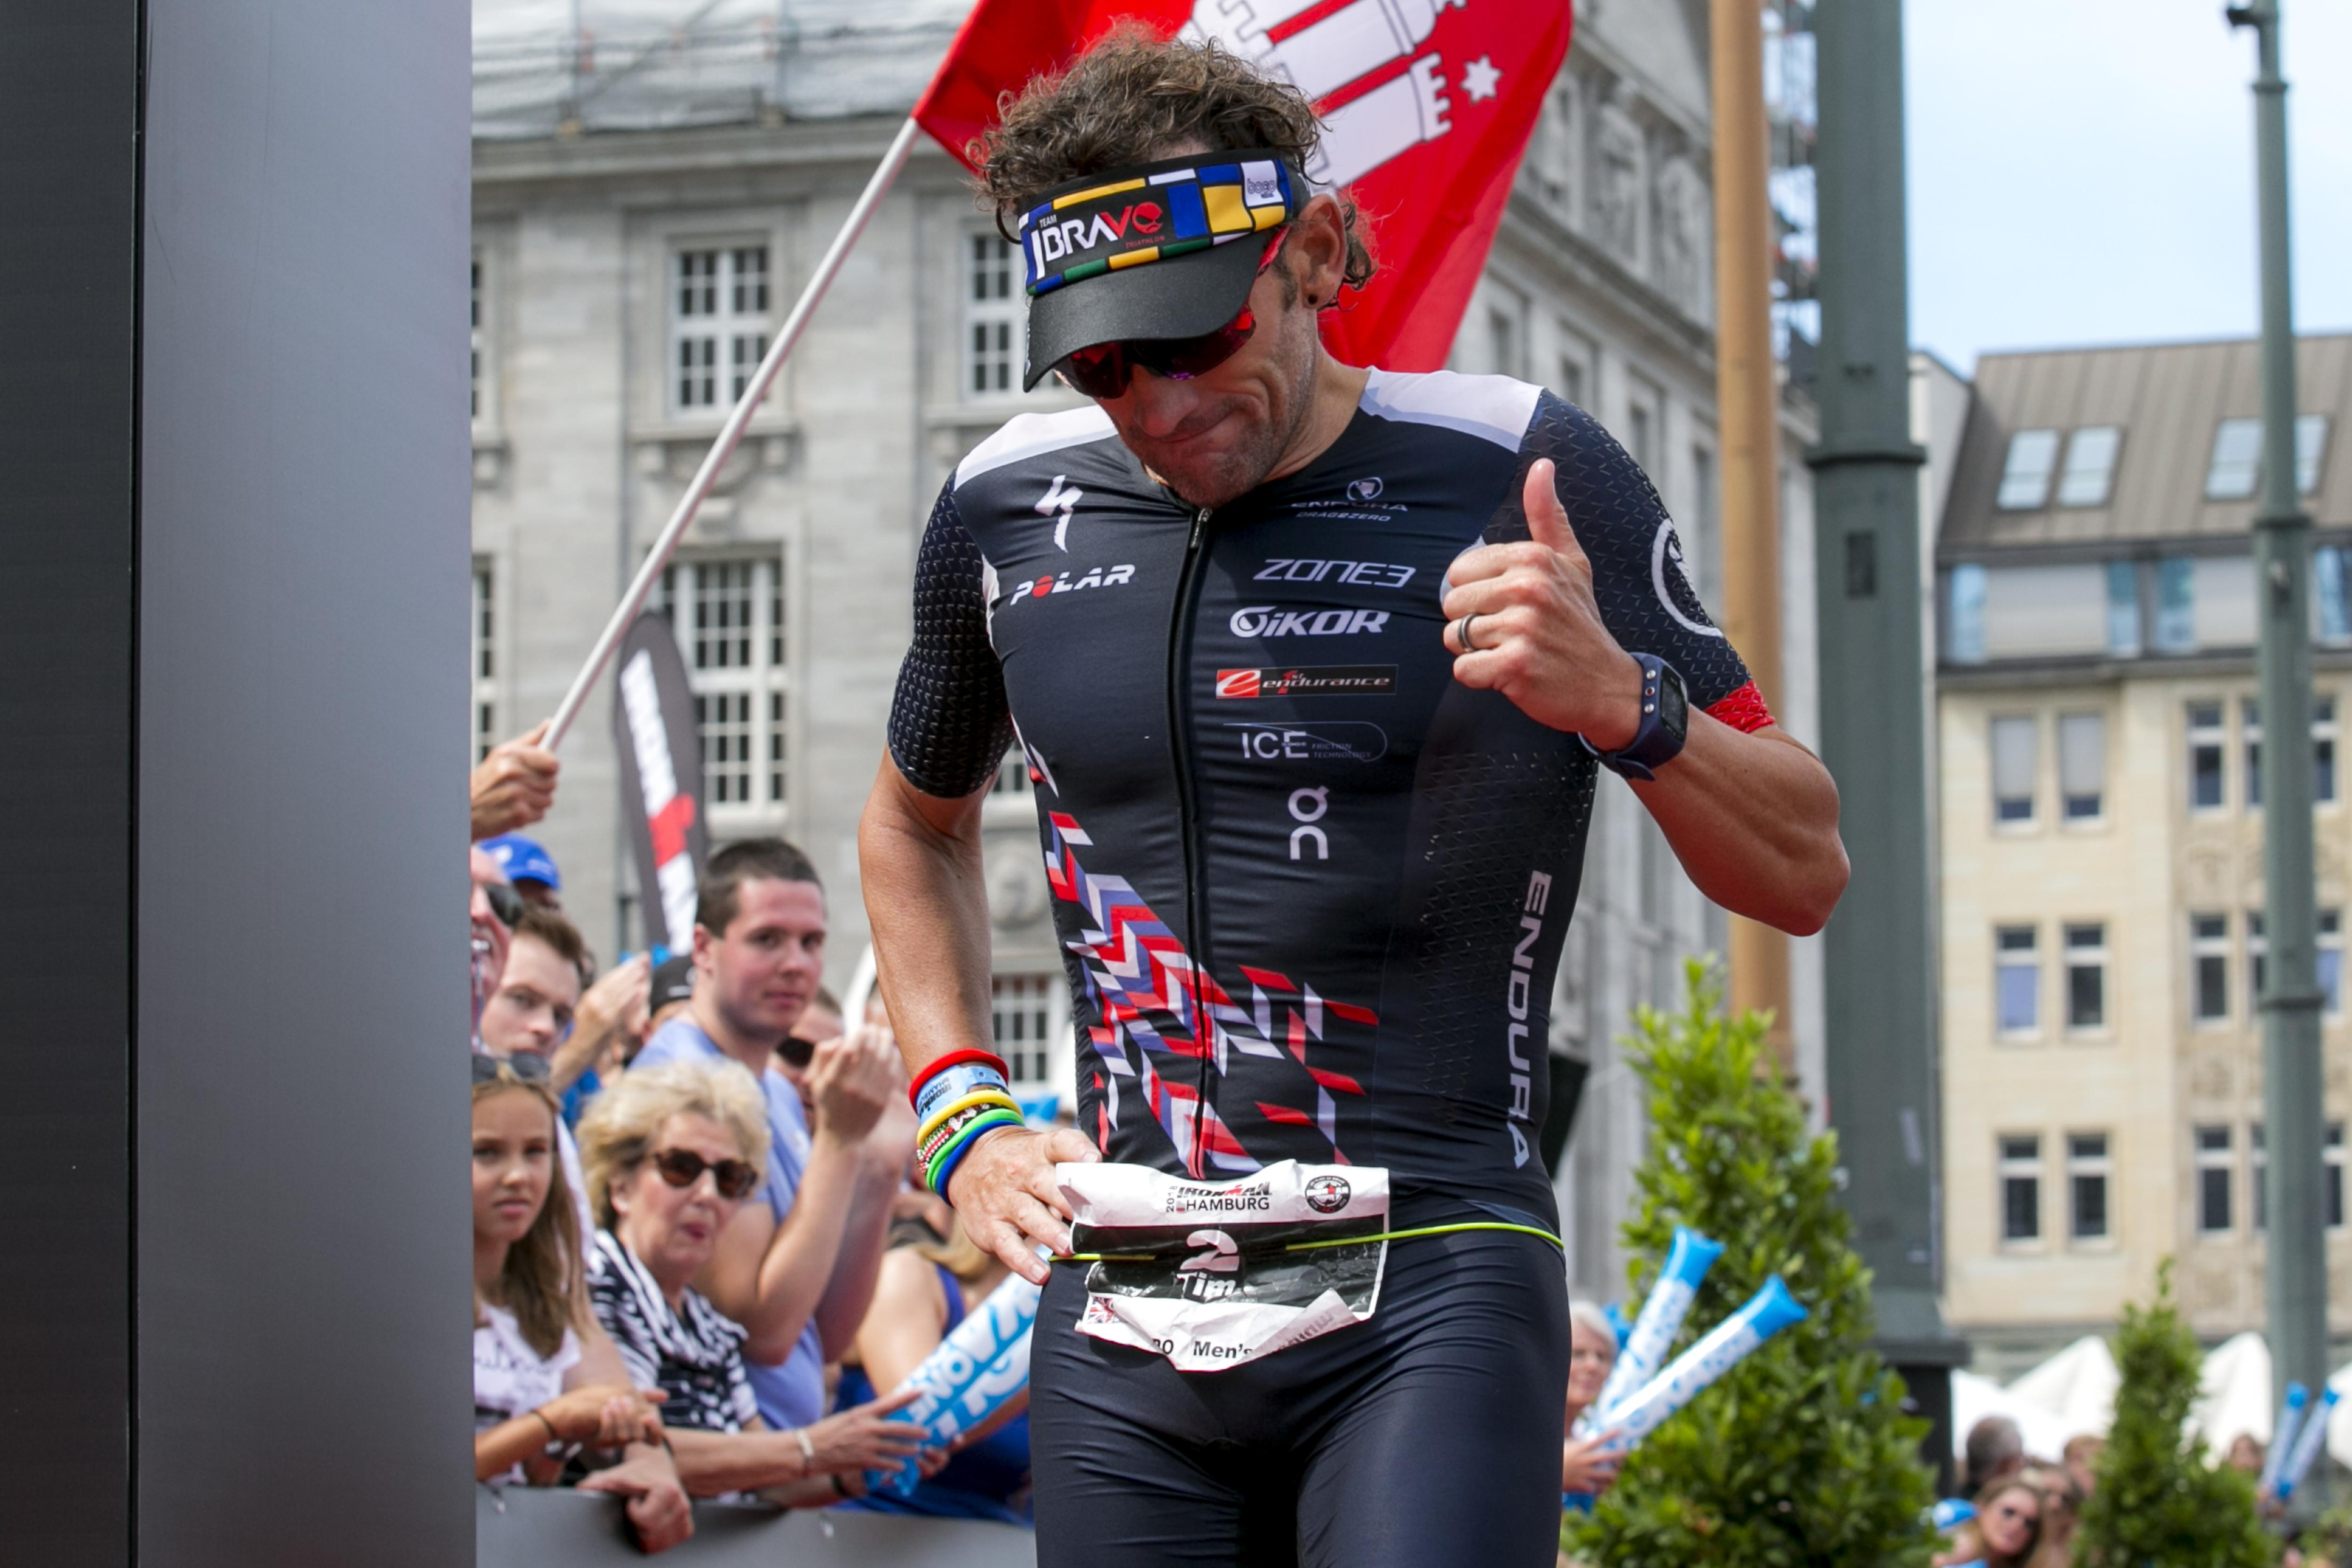 Don, pictured finishing an Ironman in Germany in July, is back for Saturday's Ironman Triathlon World Championships